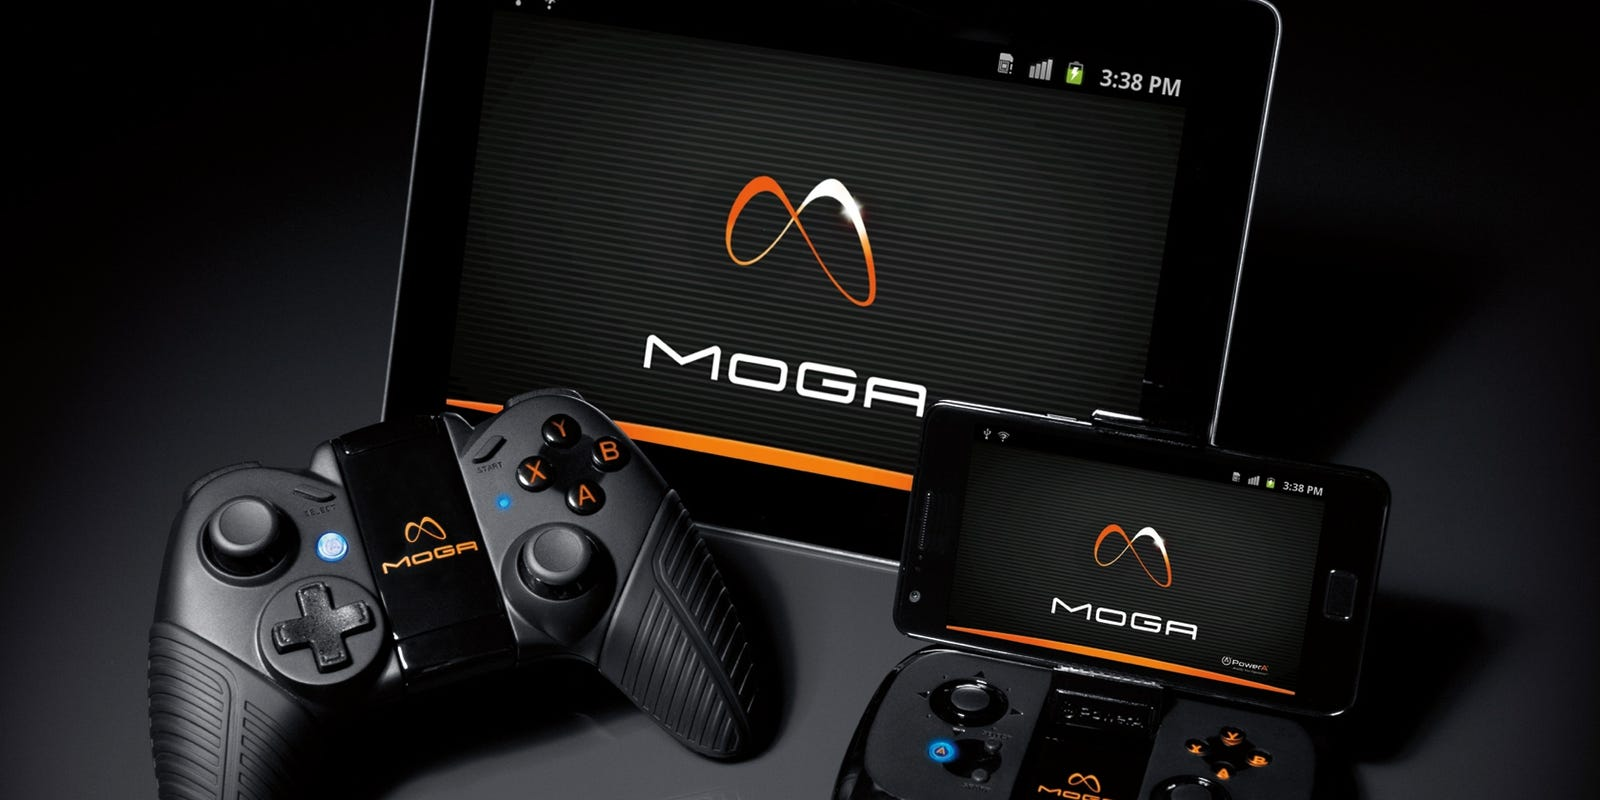 Moga An Impressive Controller For Android Gamers